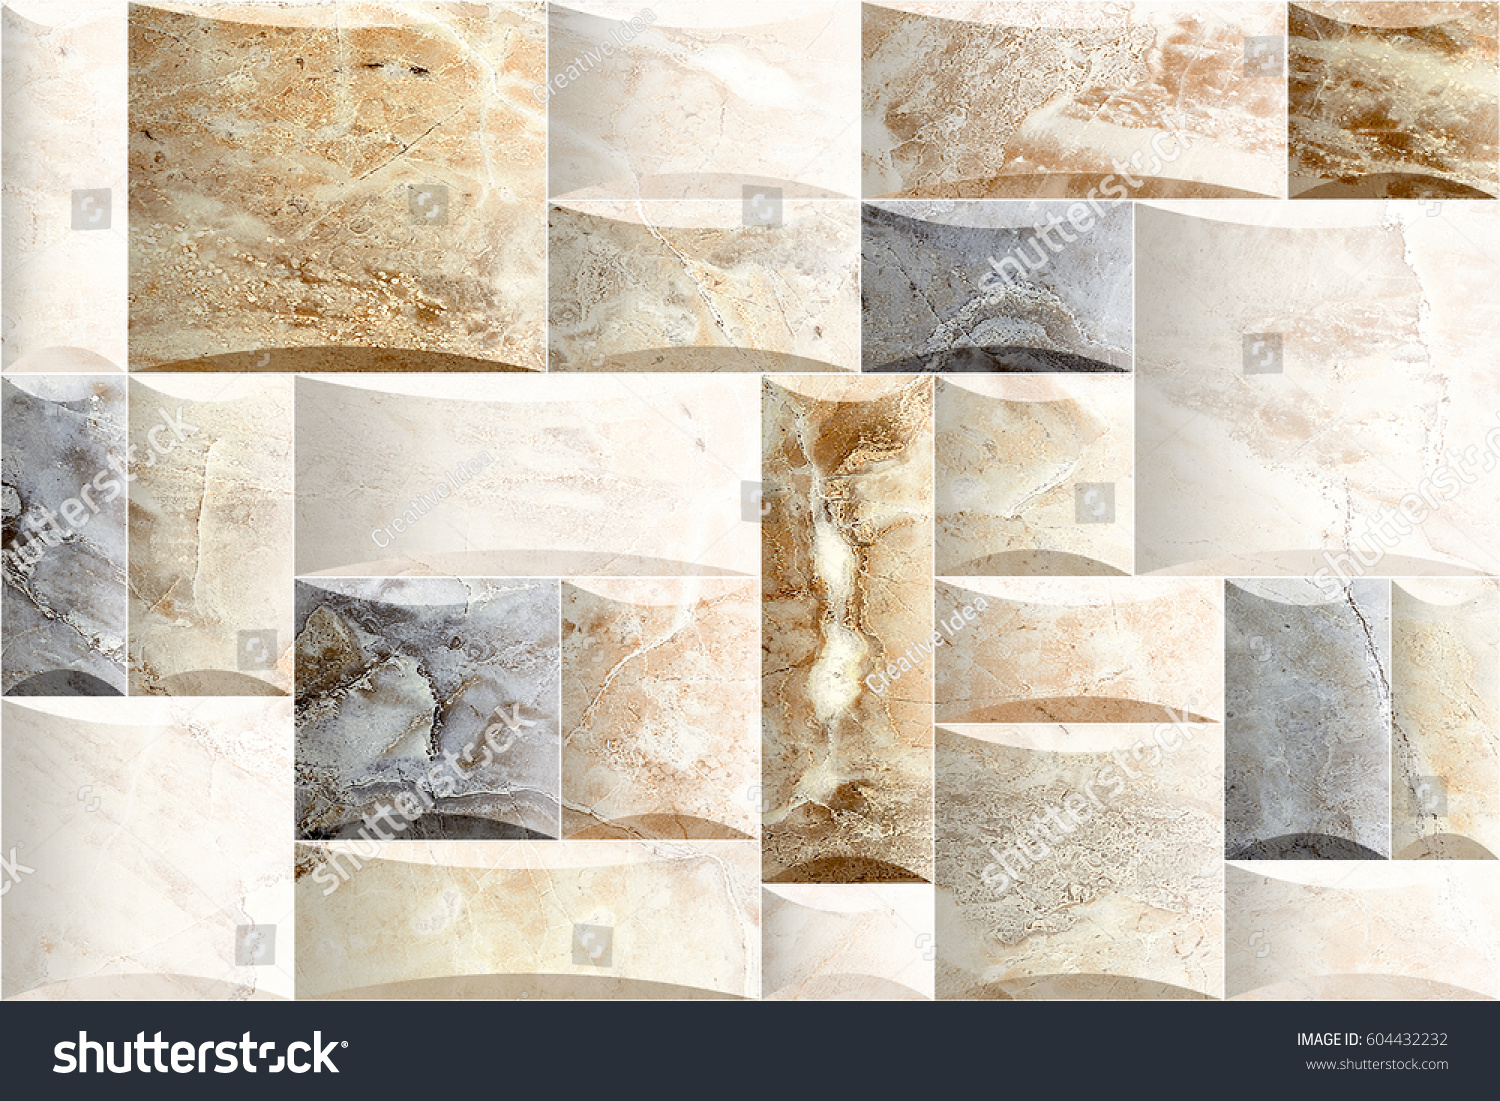 Abstract Marble Wall Tiles Decorative Design Stock Illustration